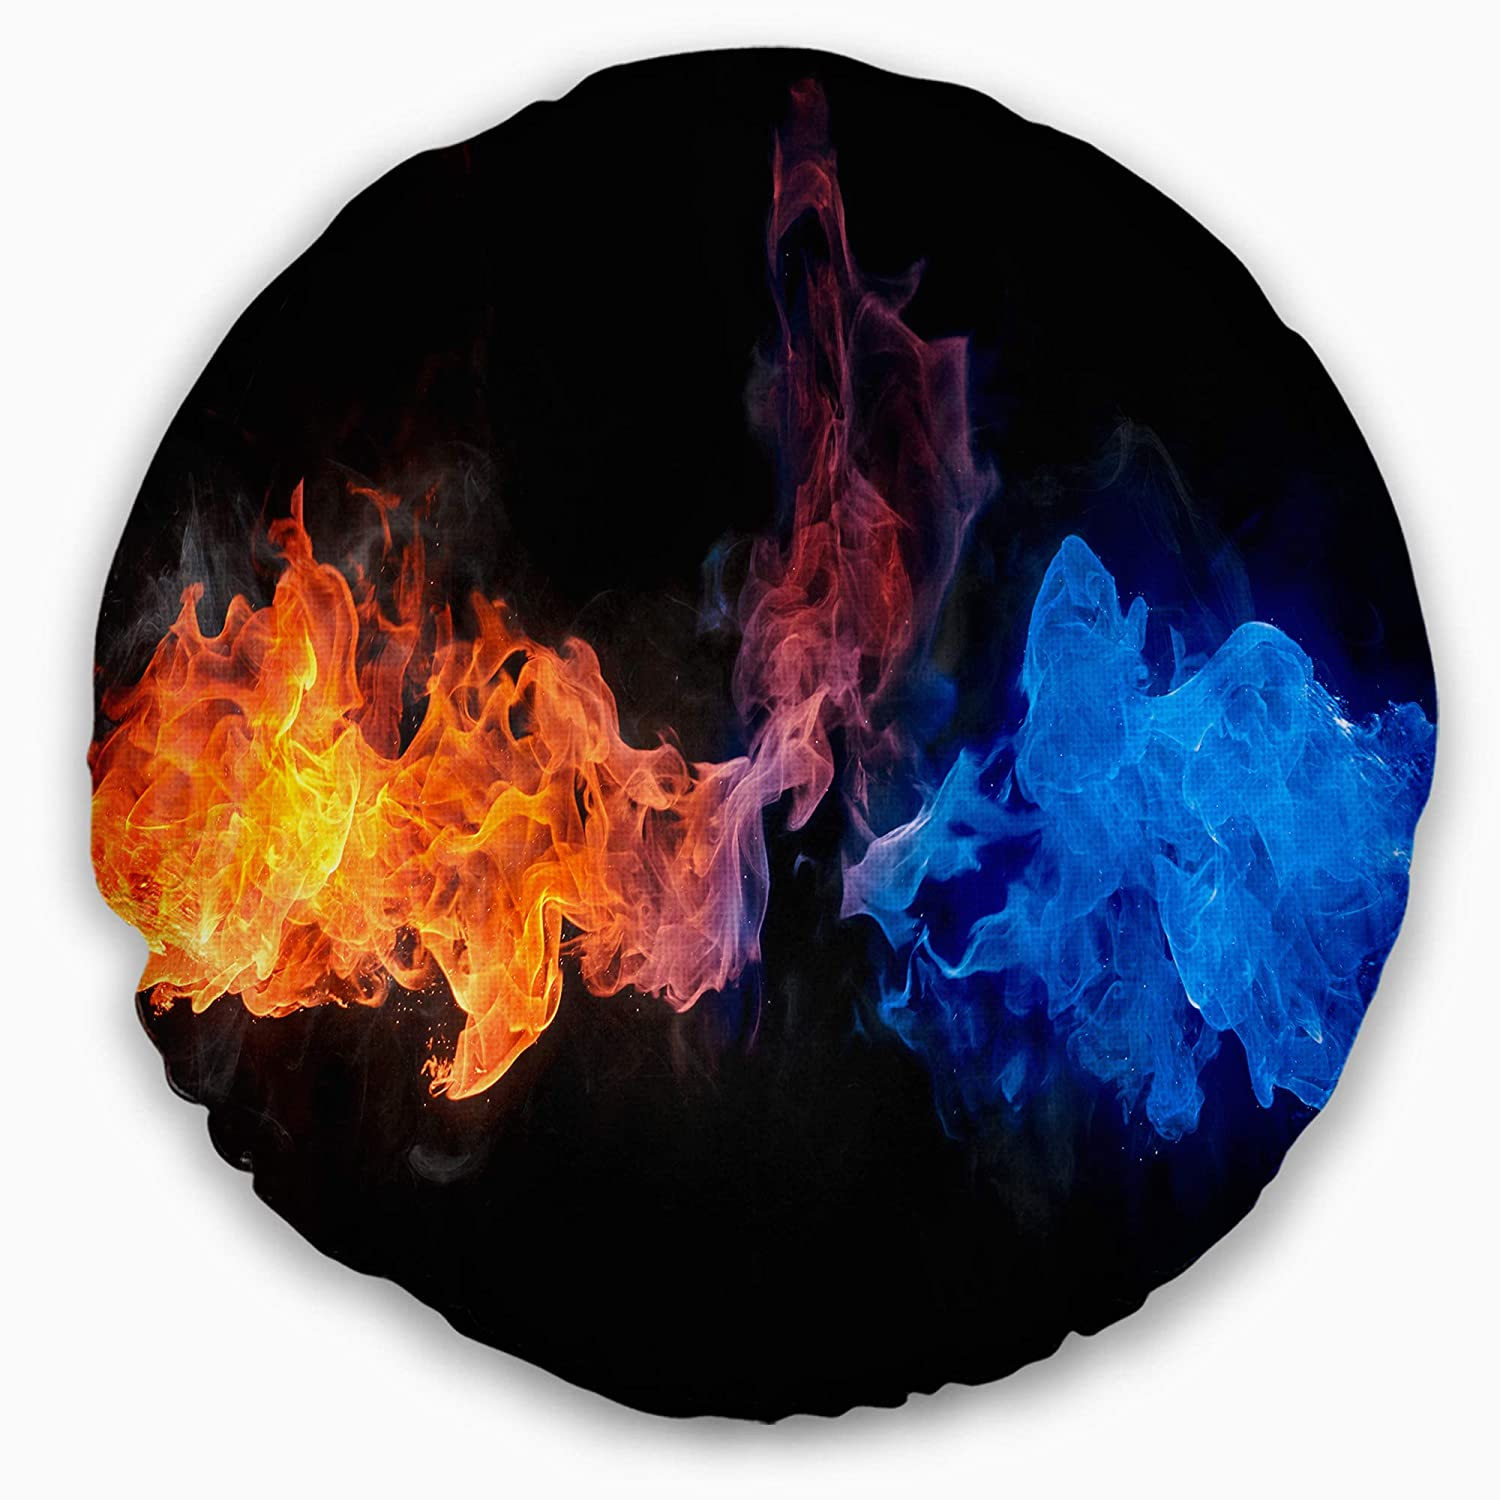 Sofa Throw Pillow 16 Insert Printed On Both Side Designart CU6740-16-16-C Blue and Red Fire Contemporary Round Cushion Cover for Living Room